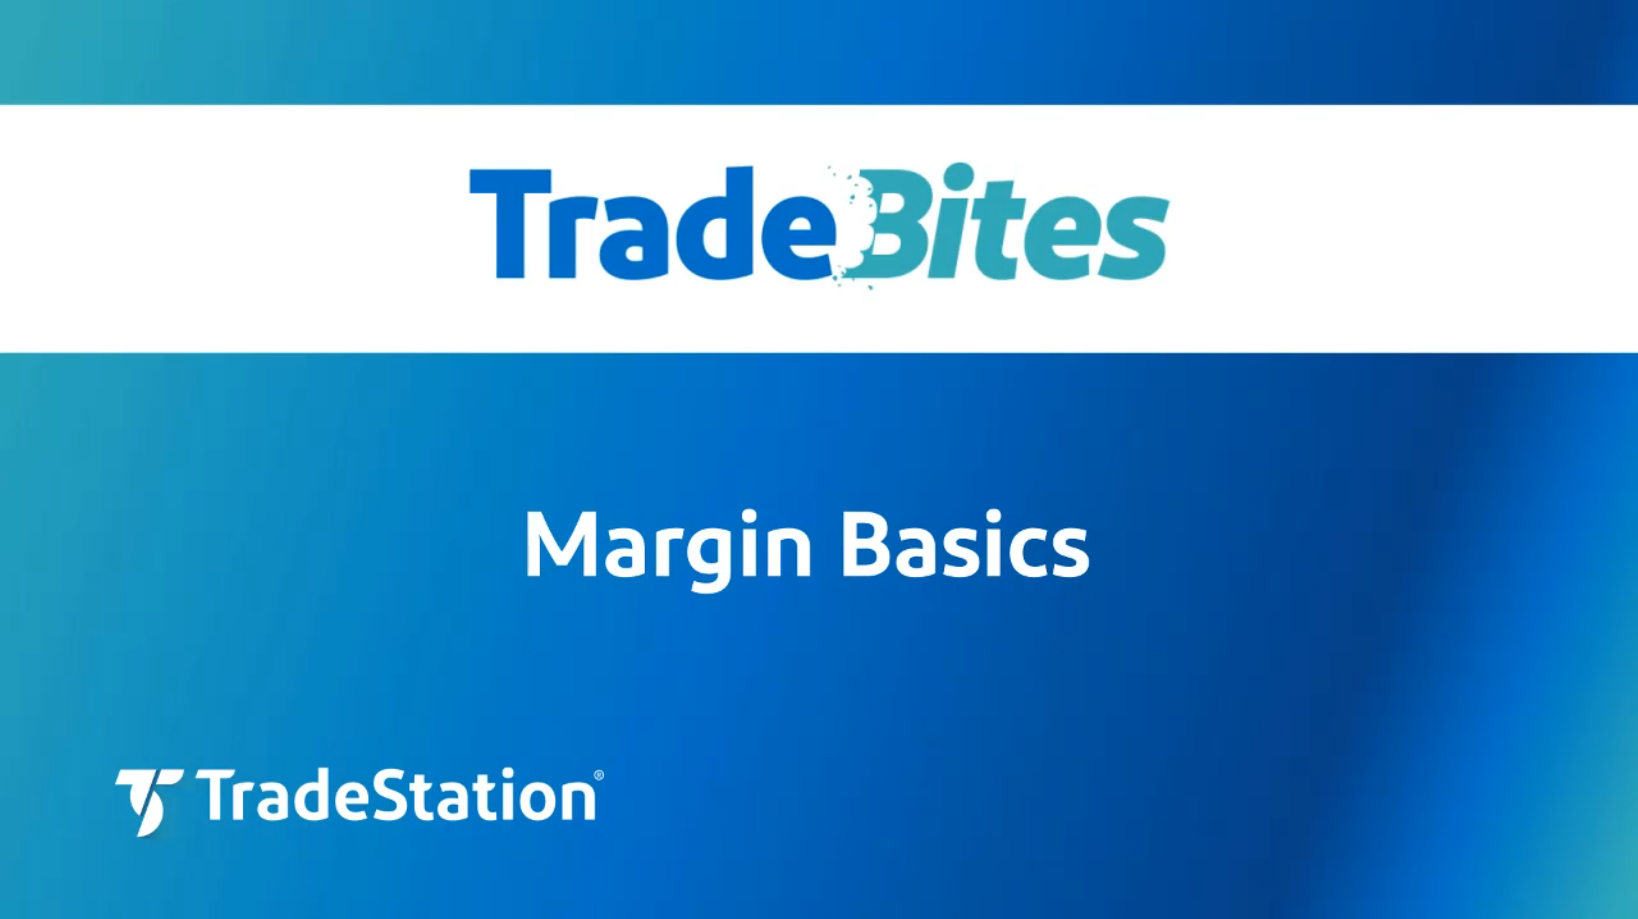 Margin Basics